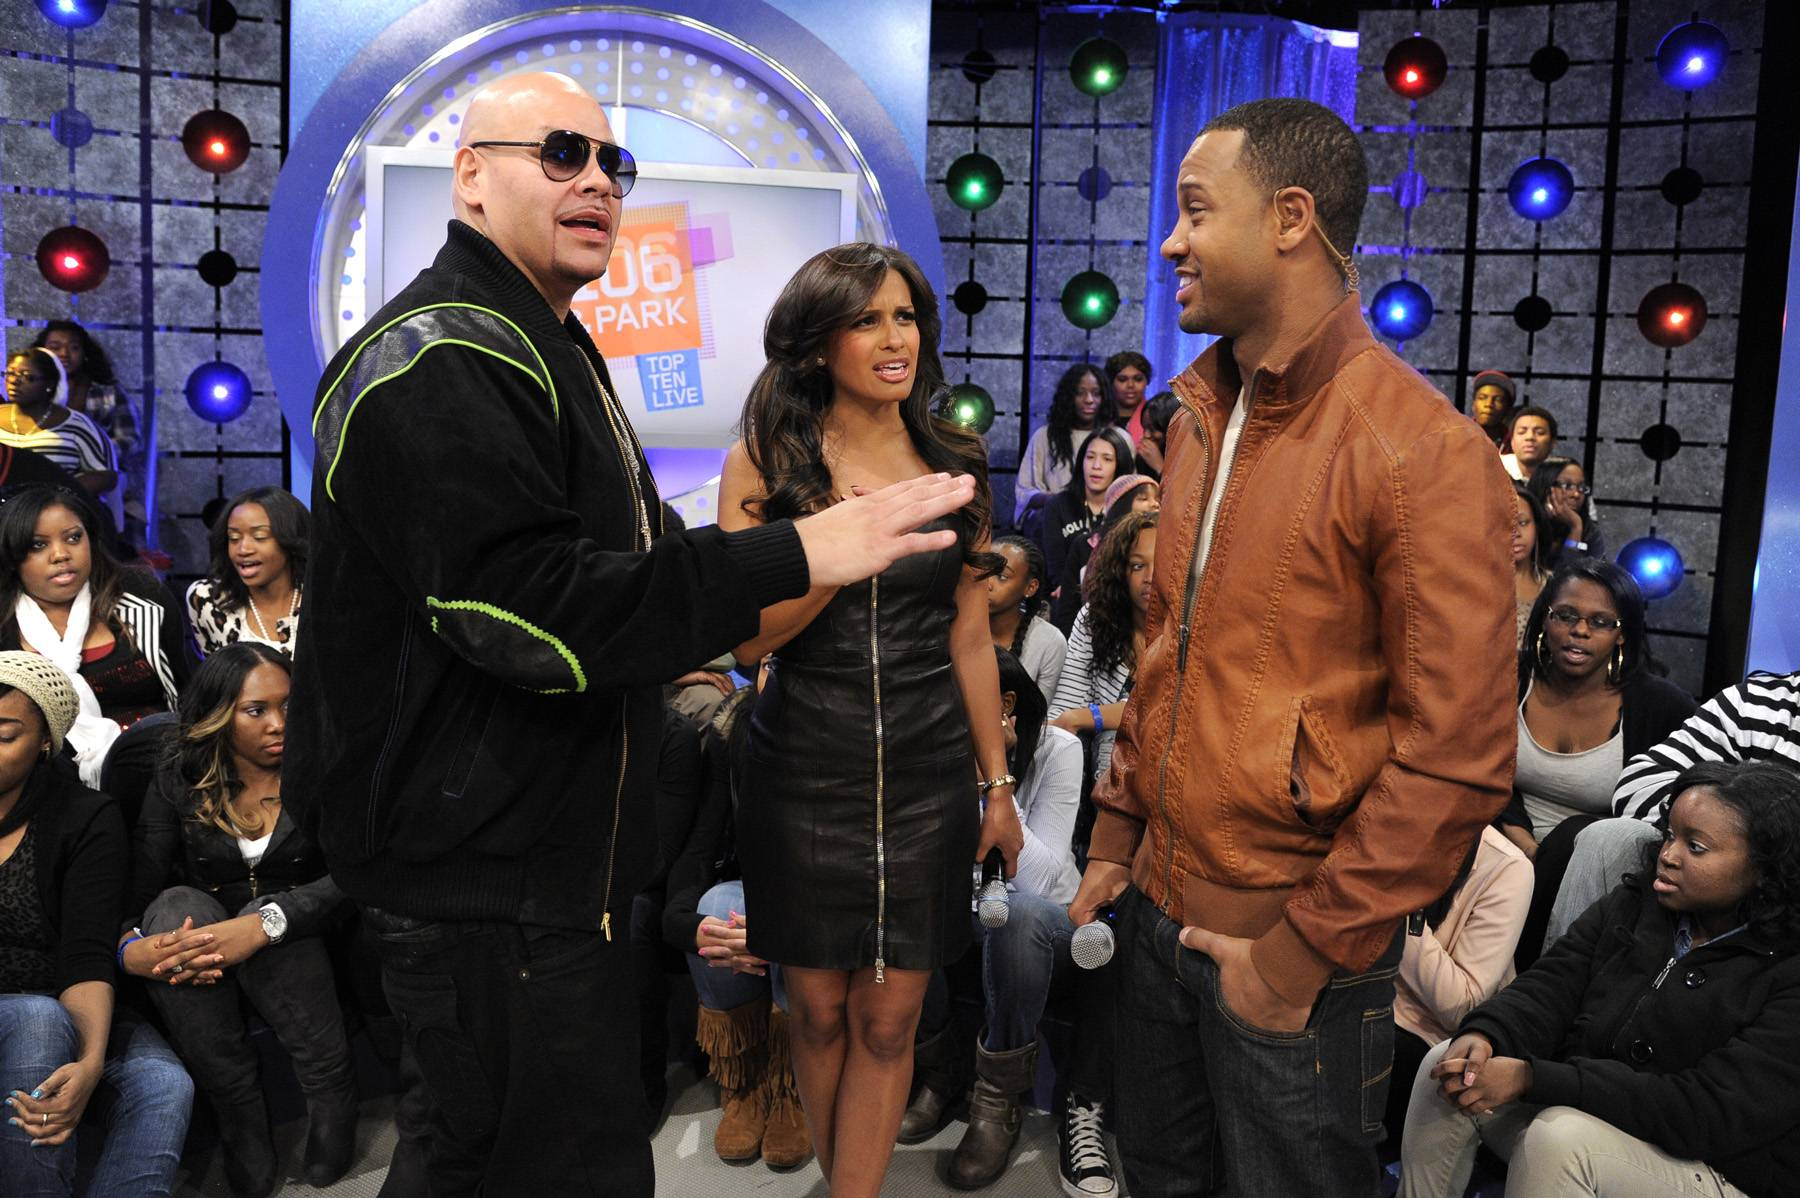 Let's Get It Started - Fat Joe with Rocsi Diaz and Terrence J at 106 & Park, January 3, 2012. (photo: John Ricard / BET)